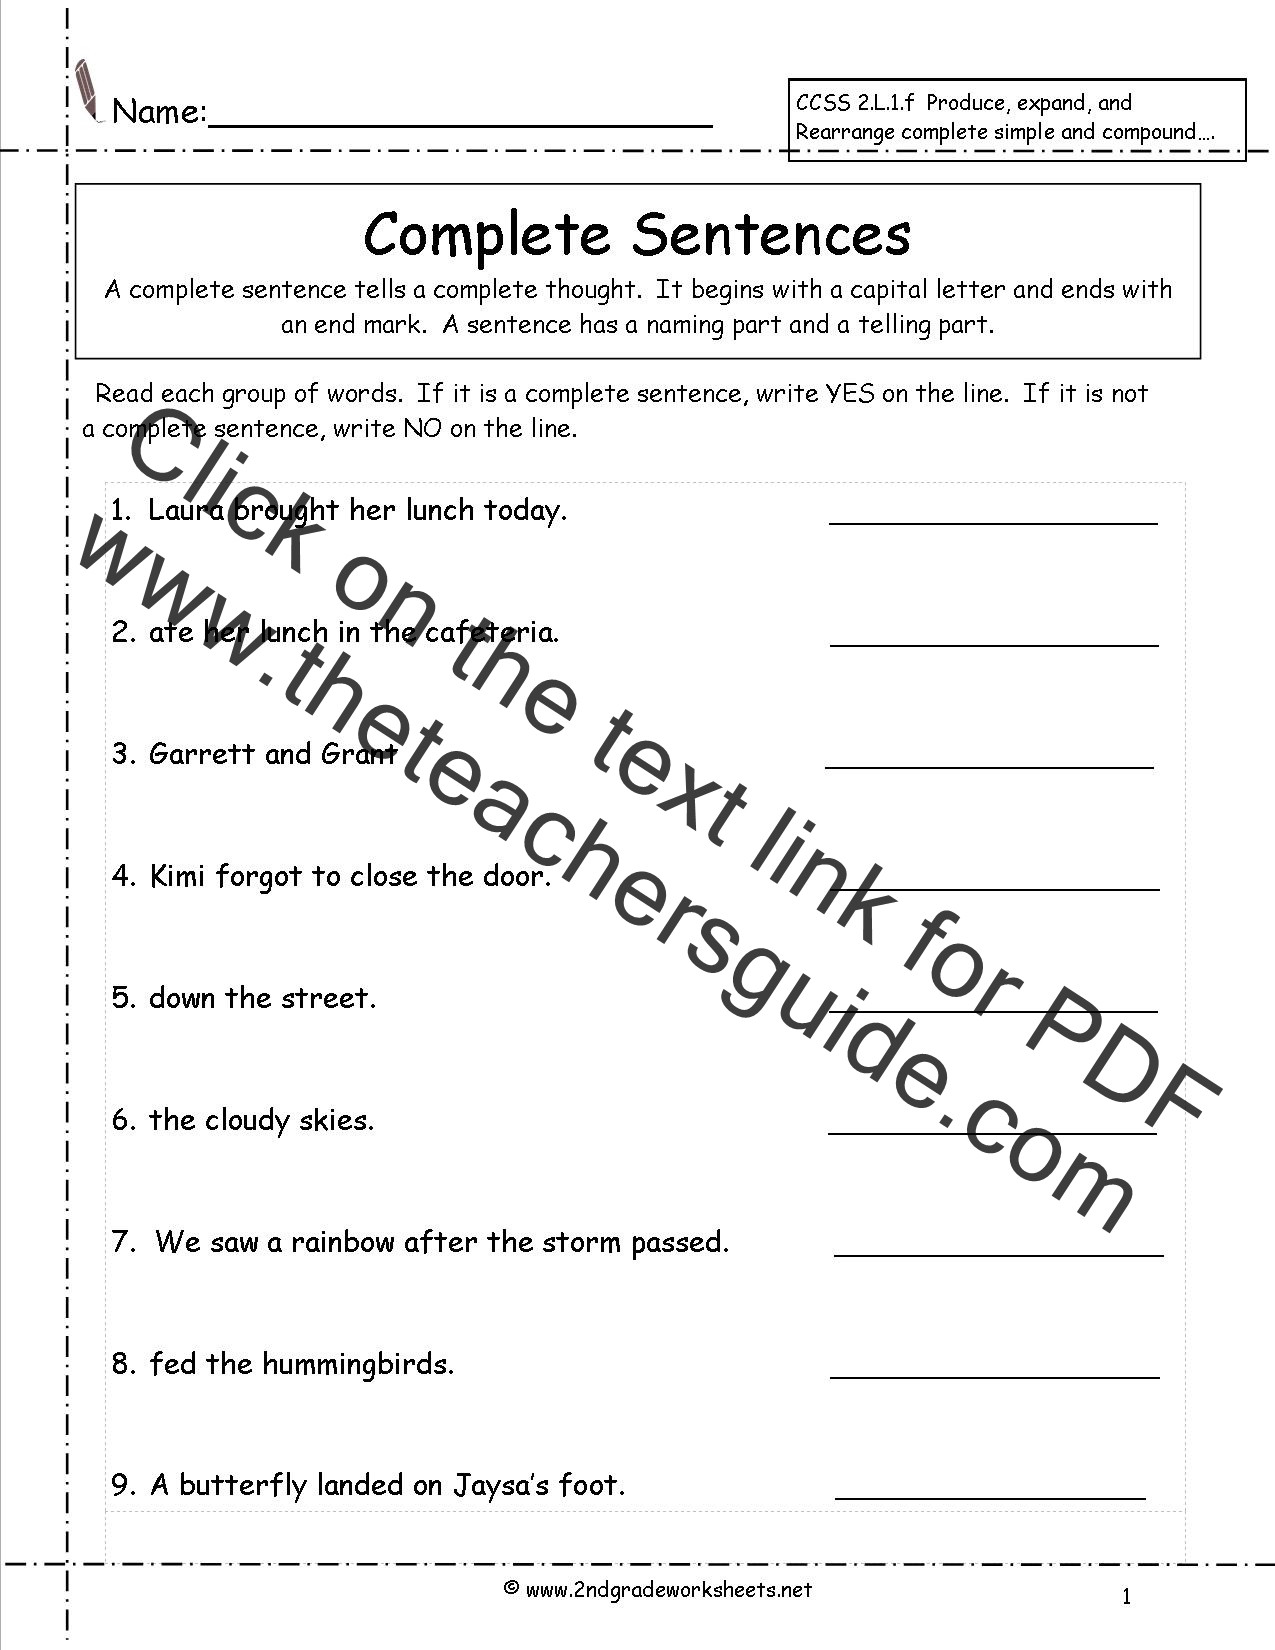 Writing In Complete Sentences Worksheet Second Grade Sentences Worksheets Ccss 2 L 1 F Worksheets